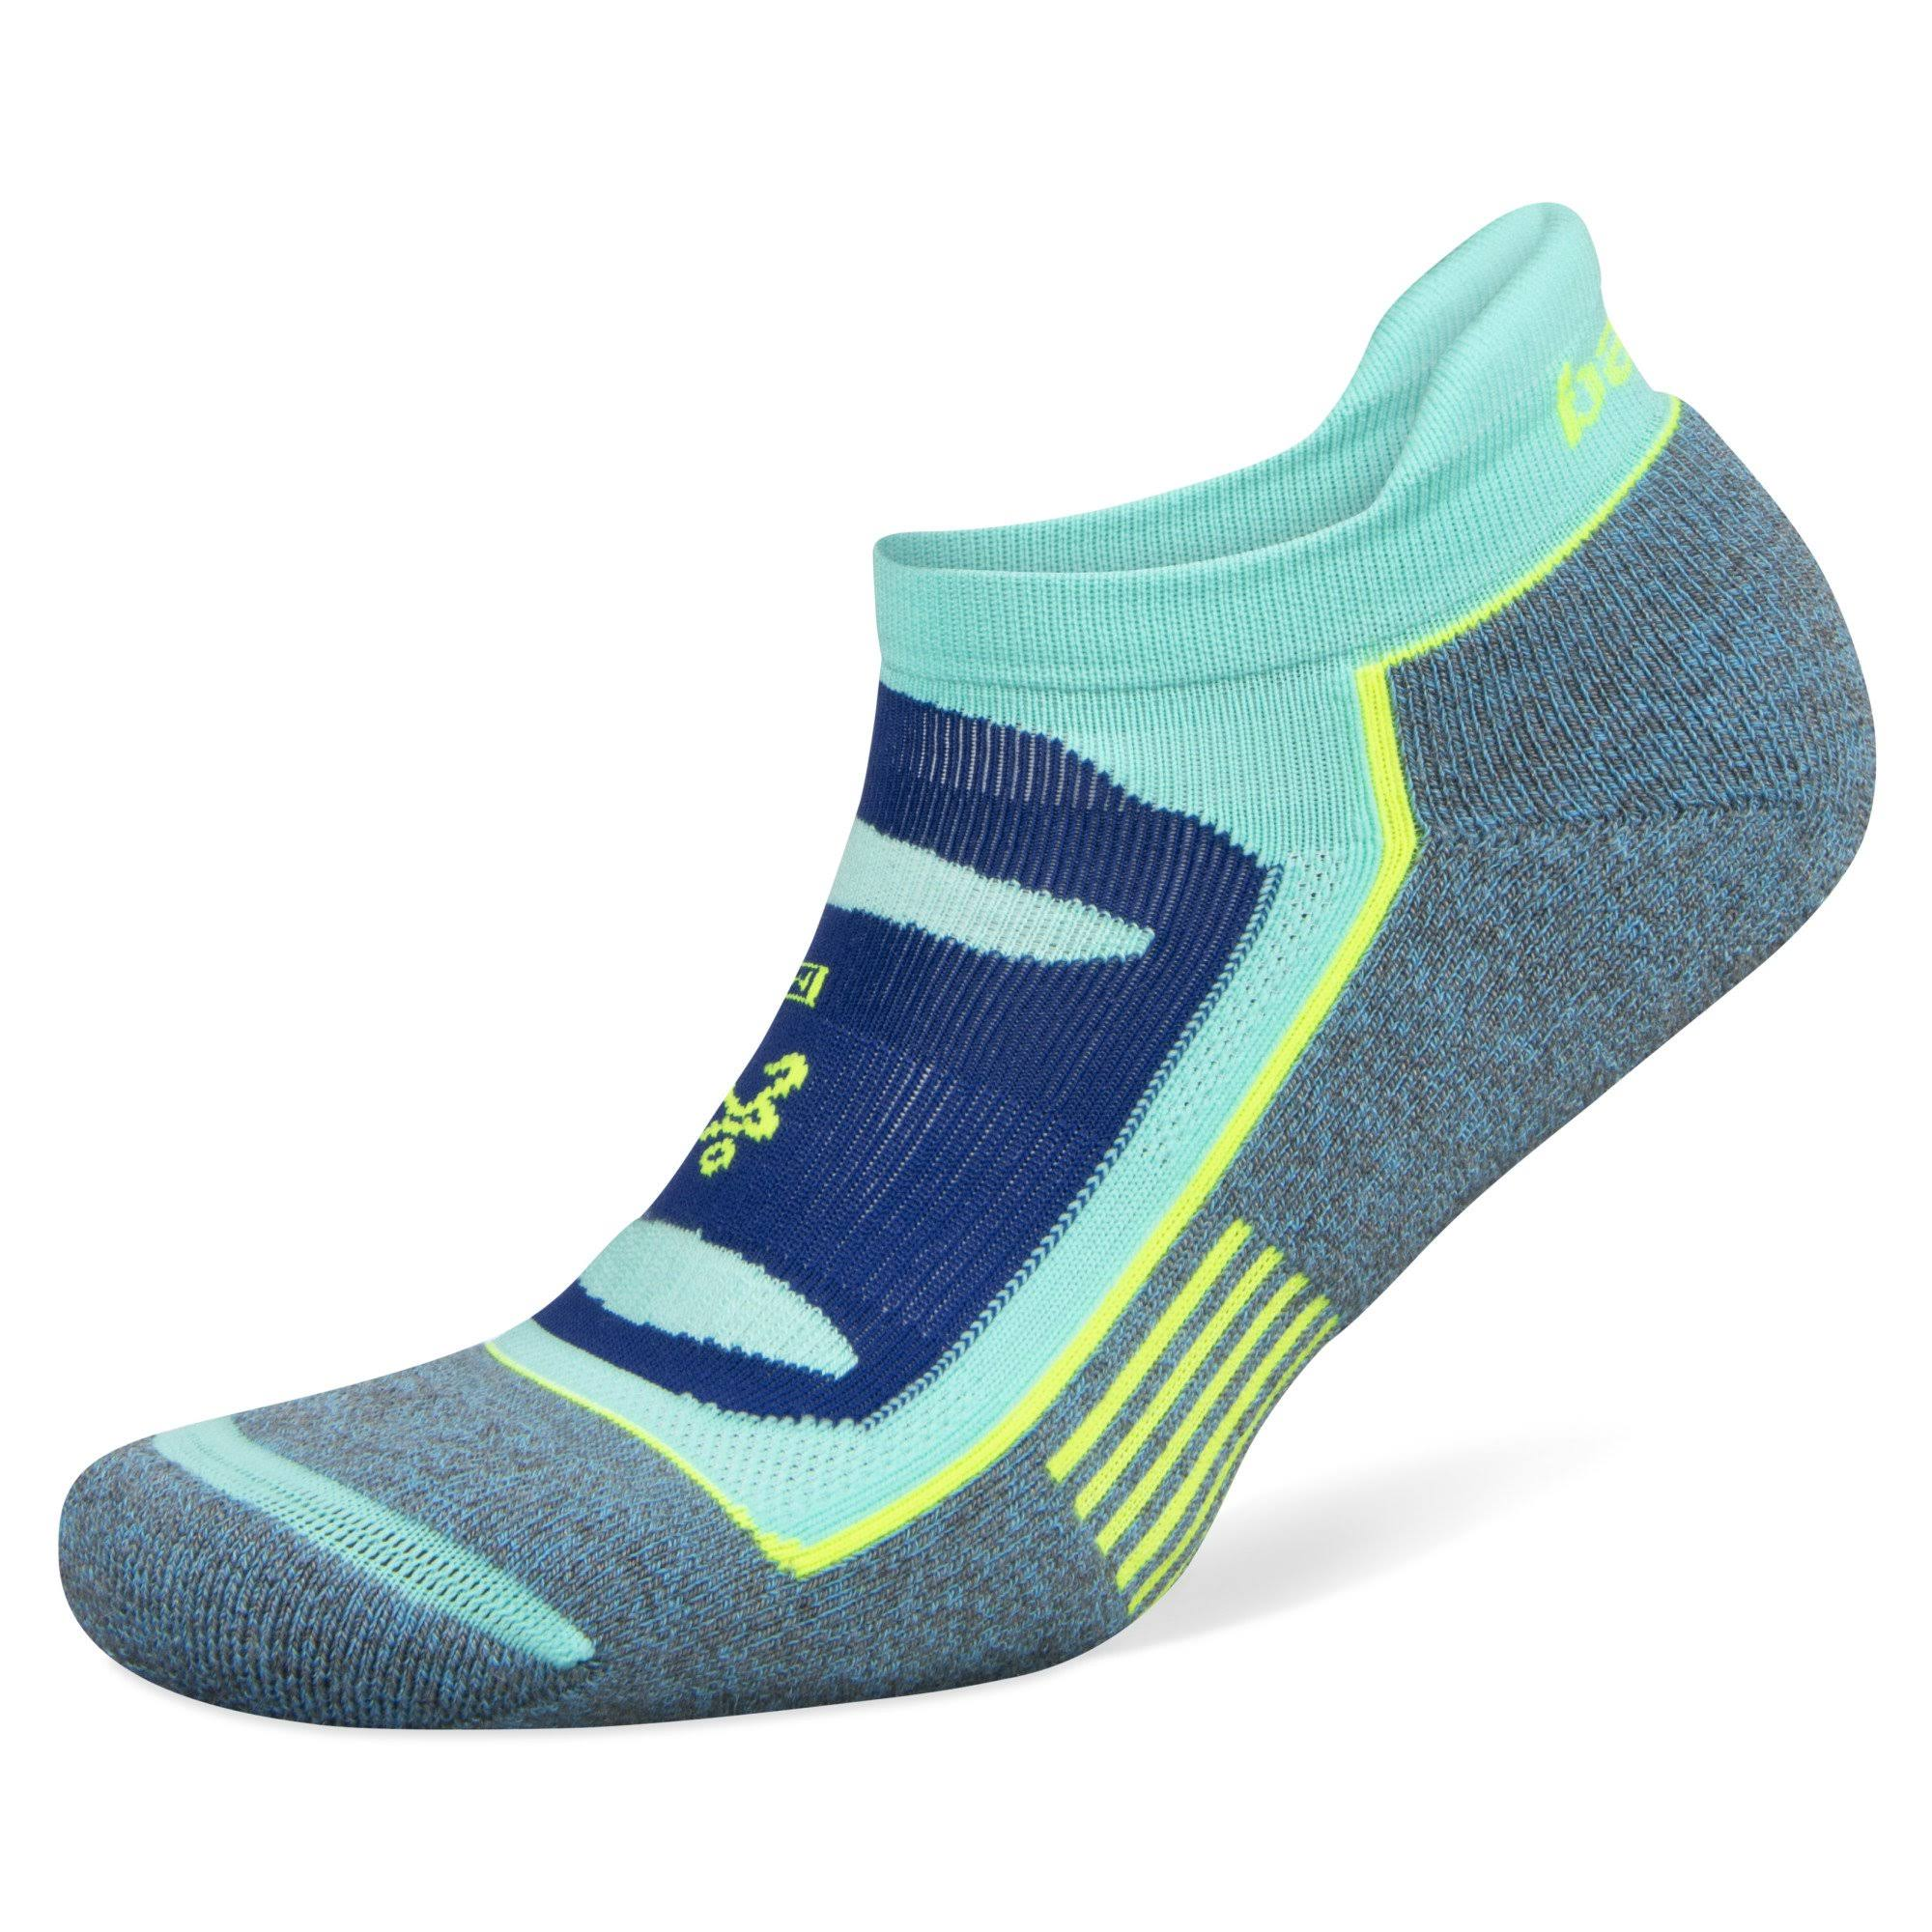 Balega Blister Resist No Show Socks - Blue/Aqua, Small